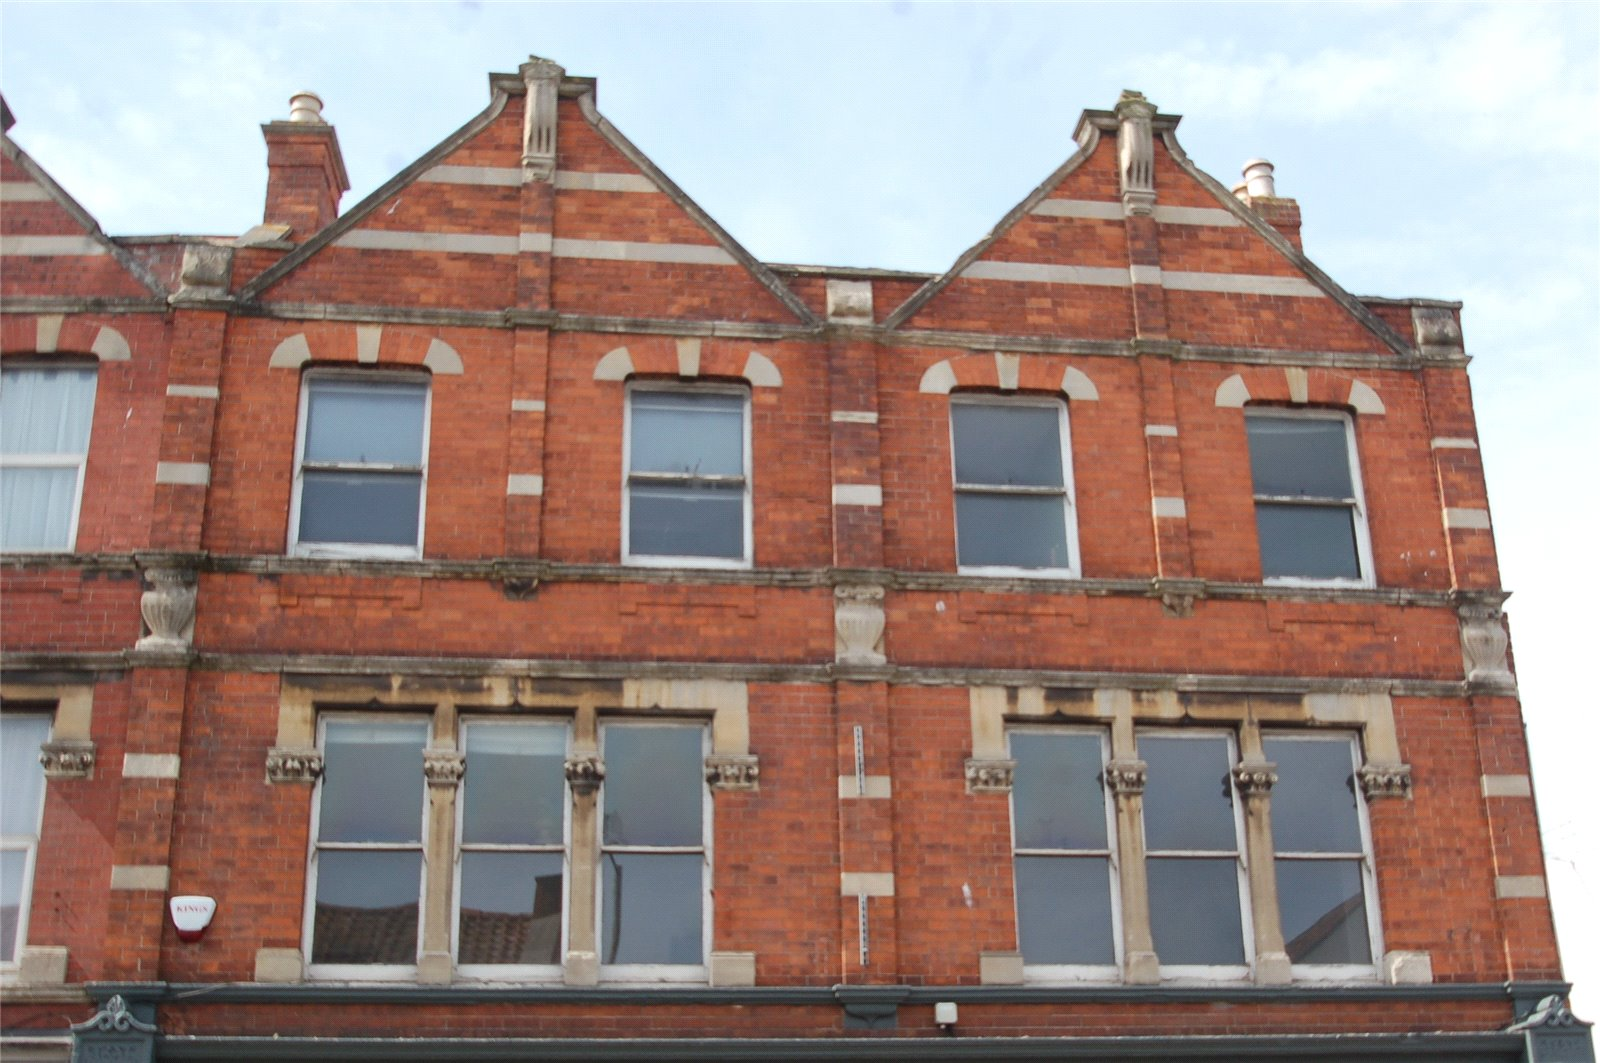 5 Bedrooms Flat for sale in St John Street BRIDGWATER Somerset TA6